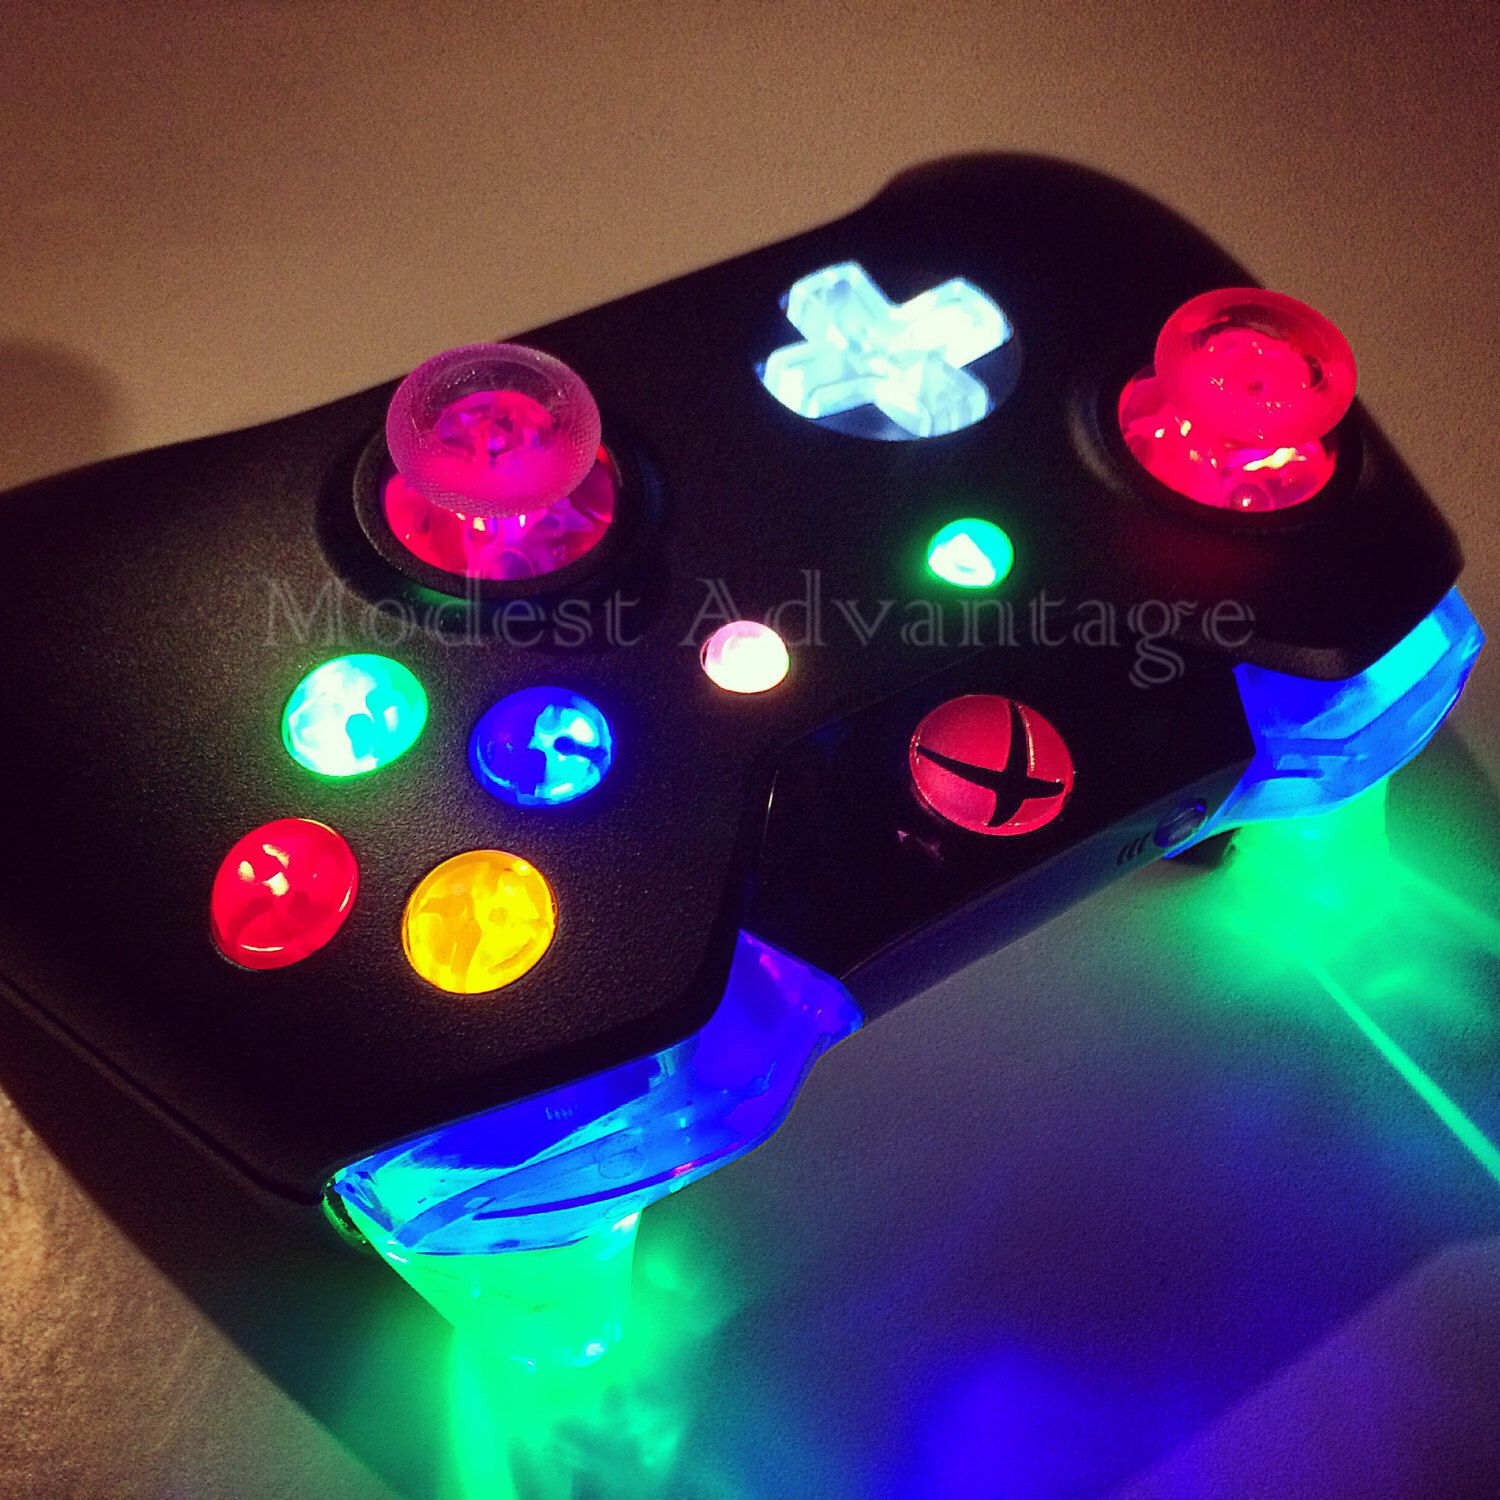 Modded Xbox 360 Controller Led Lights | Lamps and Lighting by IADPNET